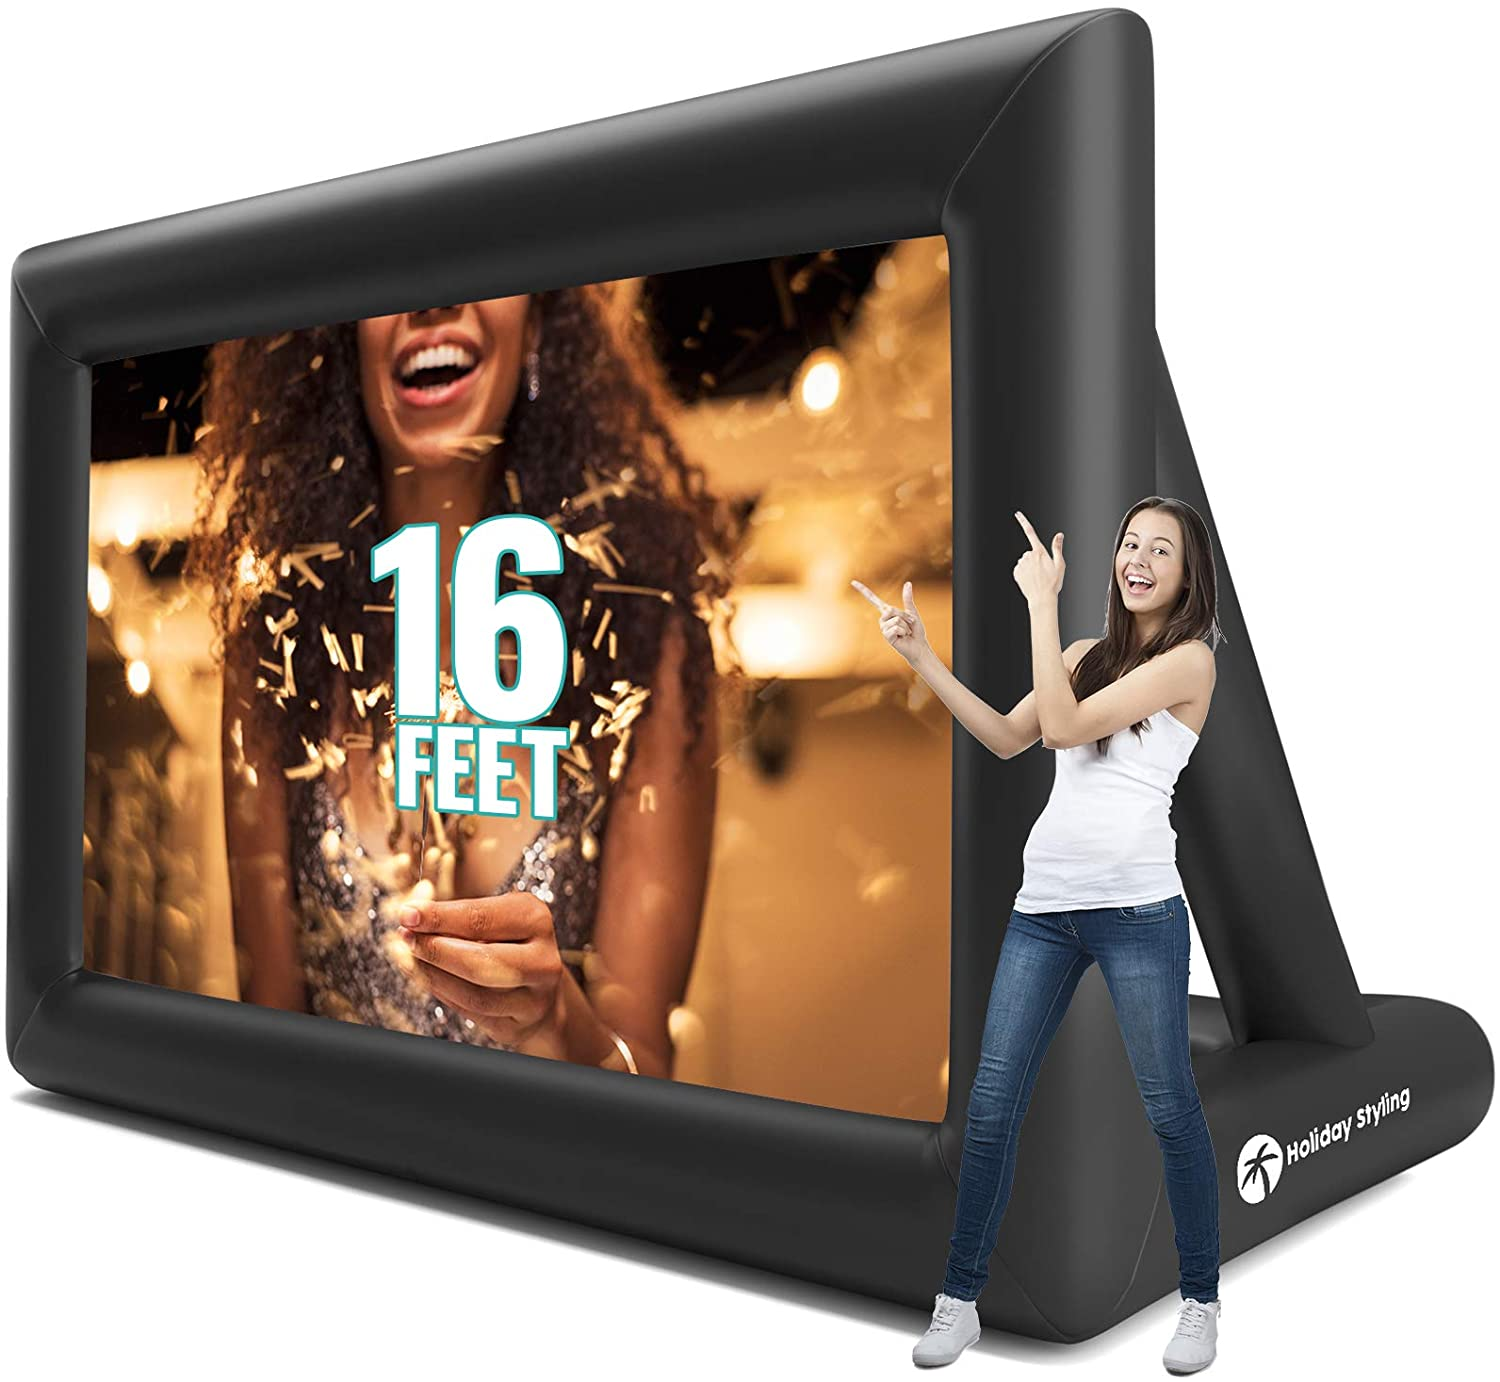 Holiday Styling: Outdoor Projector Screen – Outdoor Movie Screen - TV Projection Screen - Inflatable Portable Projector Screen for Family Movies - Premium Grade 200 inch Diagonal (16ft) Front + Rear